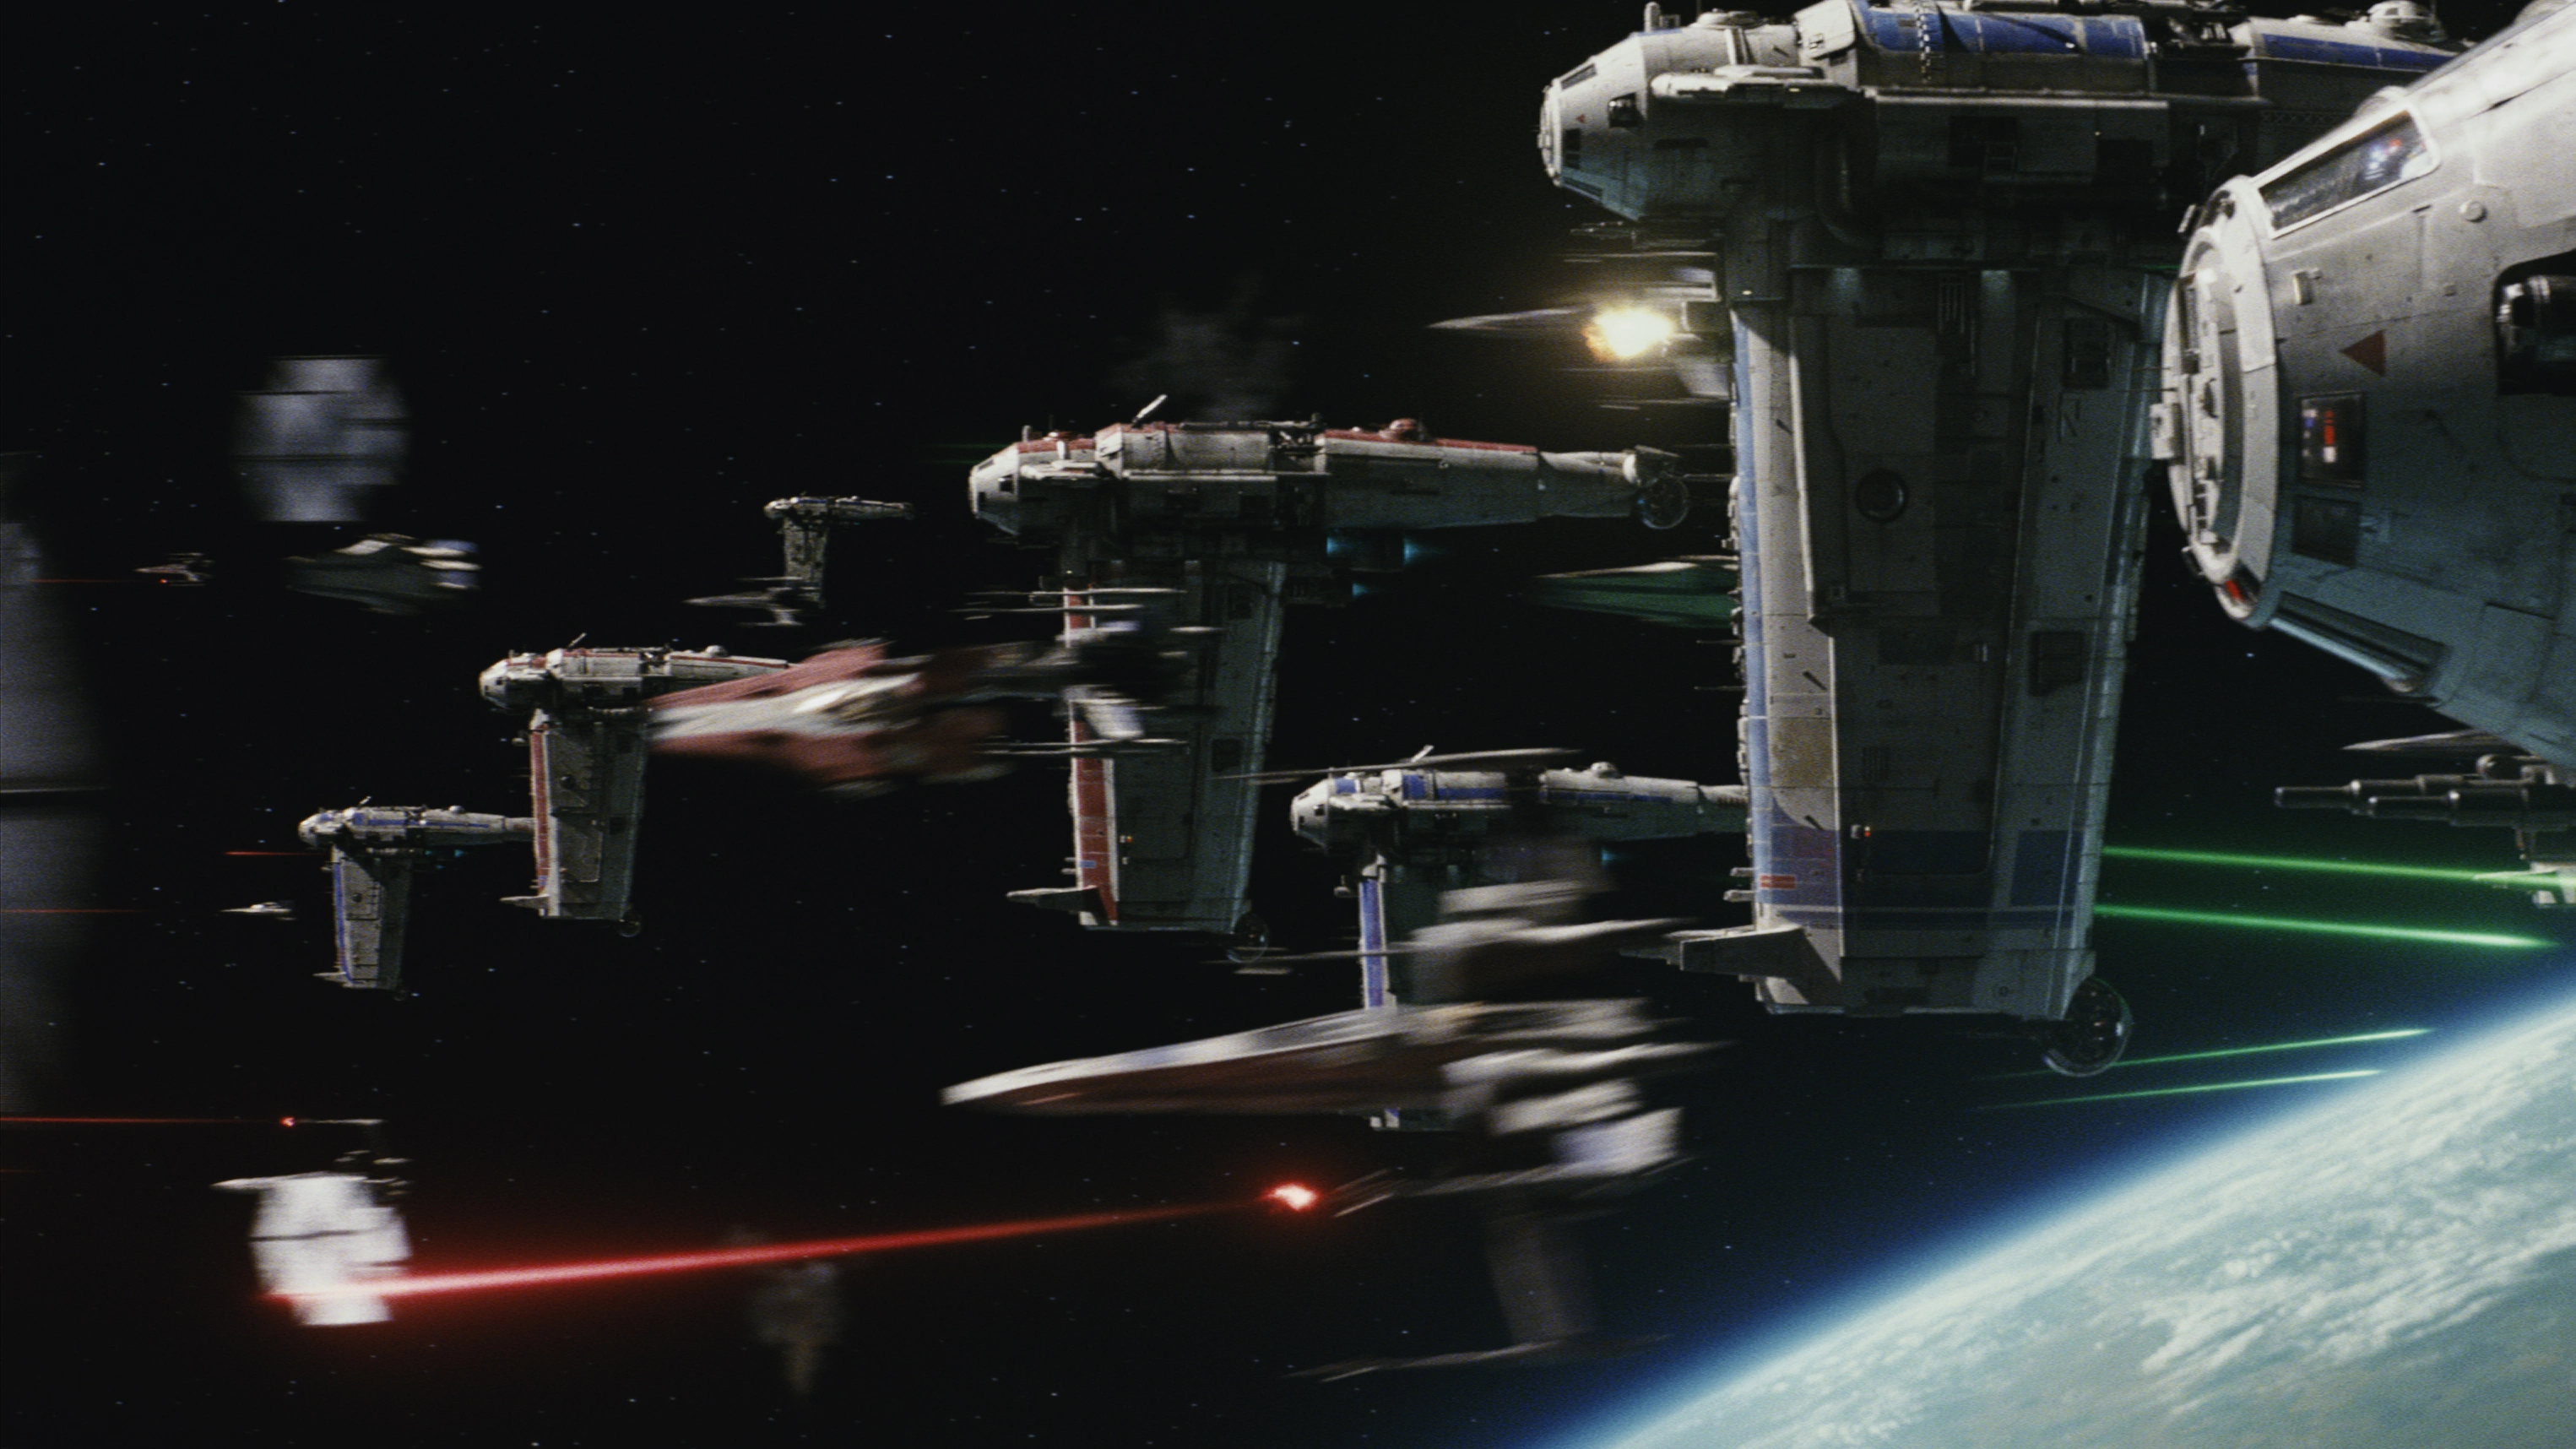 How The Last Jedi Made Star Wars Space Combat Legible